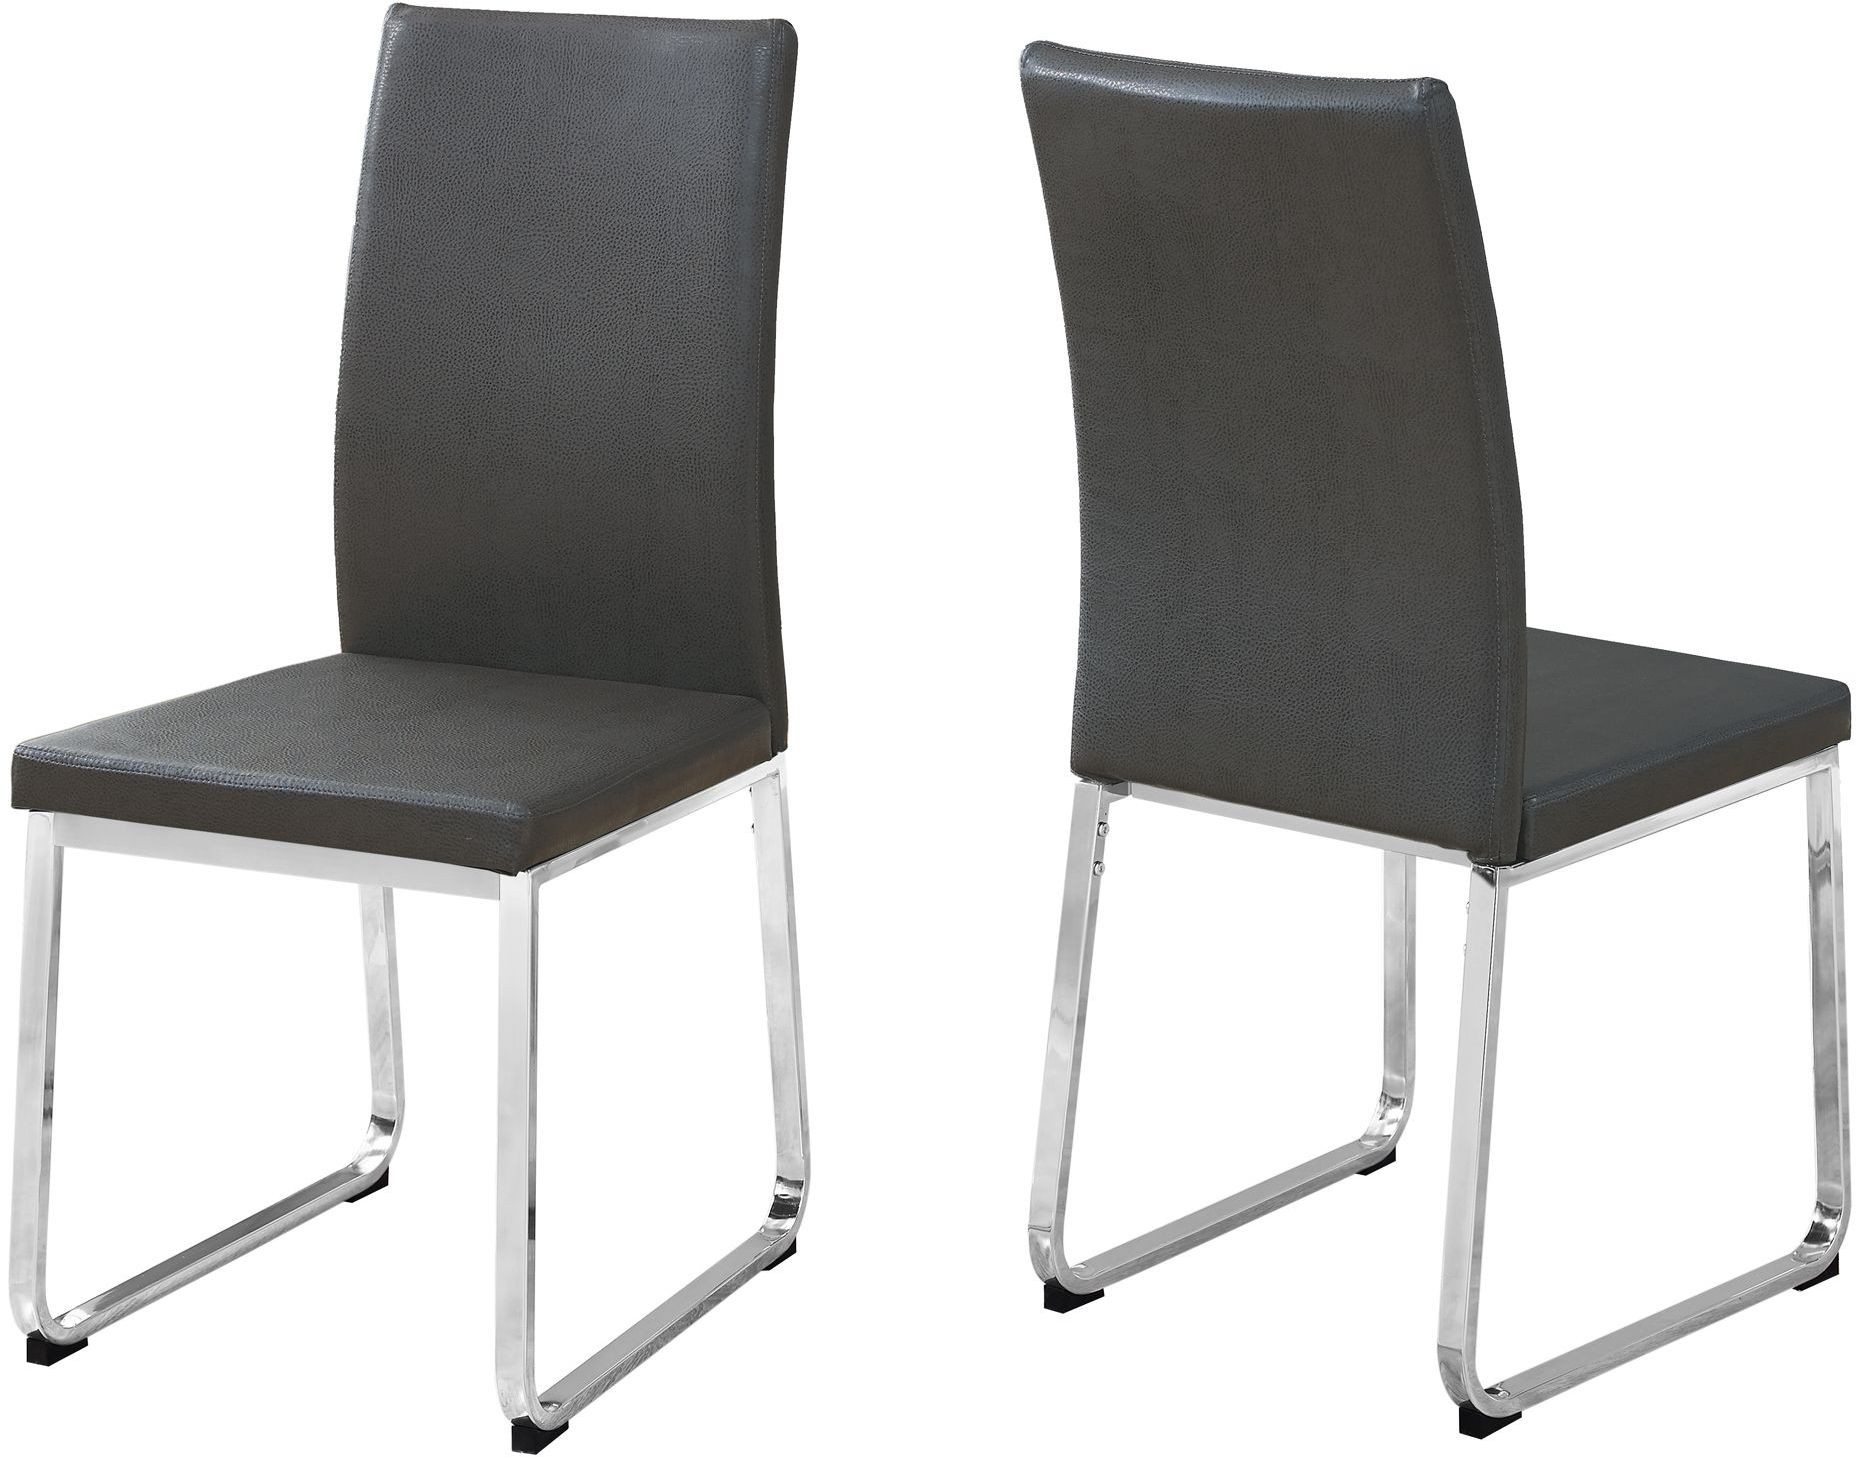 gray leather and chrome dining chair set of 2 from monarch coleman furniture. Black Bedroom Furniture Sets. Home Design Ideas